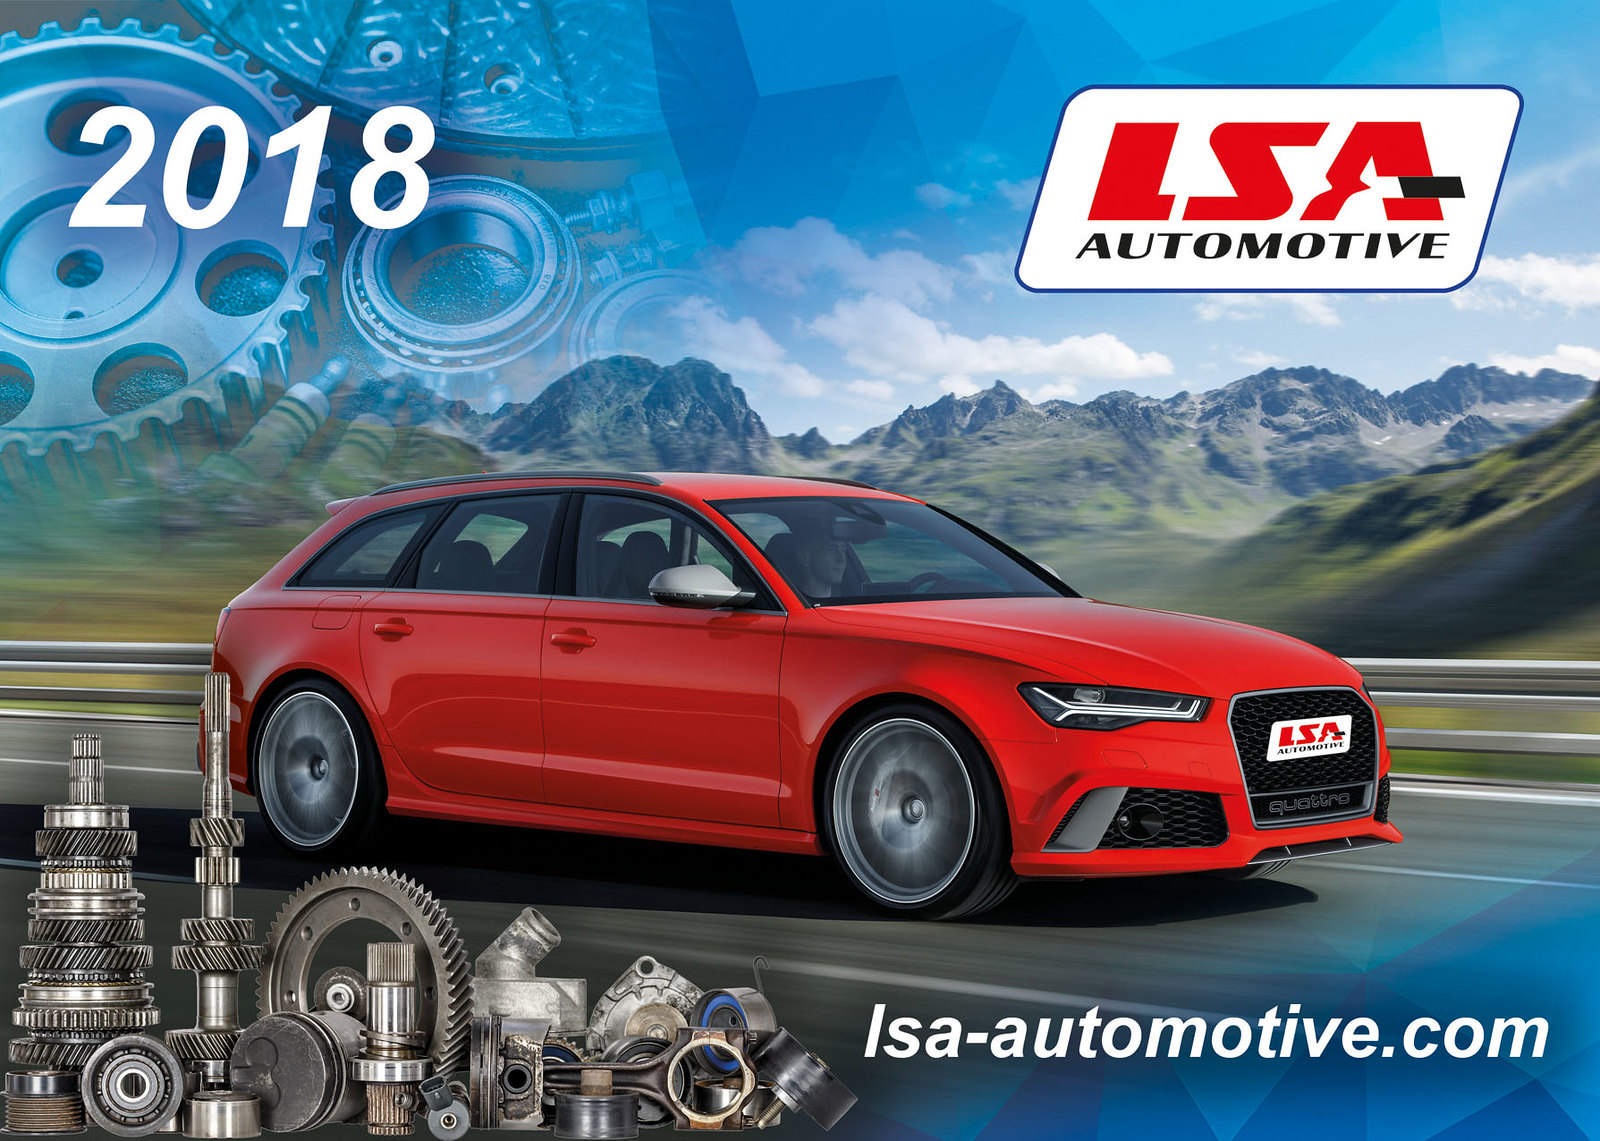 (09) LSA Automotive 01 verh